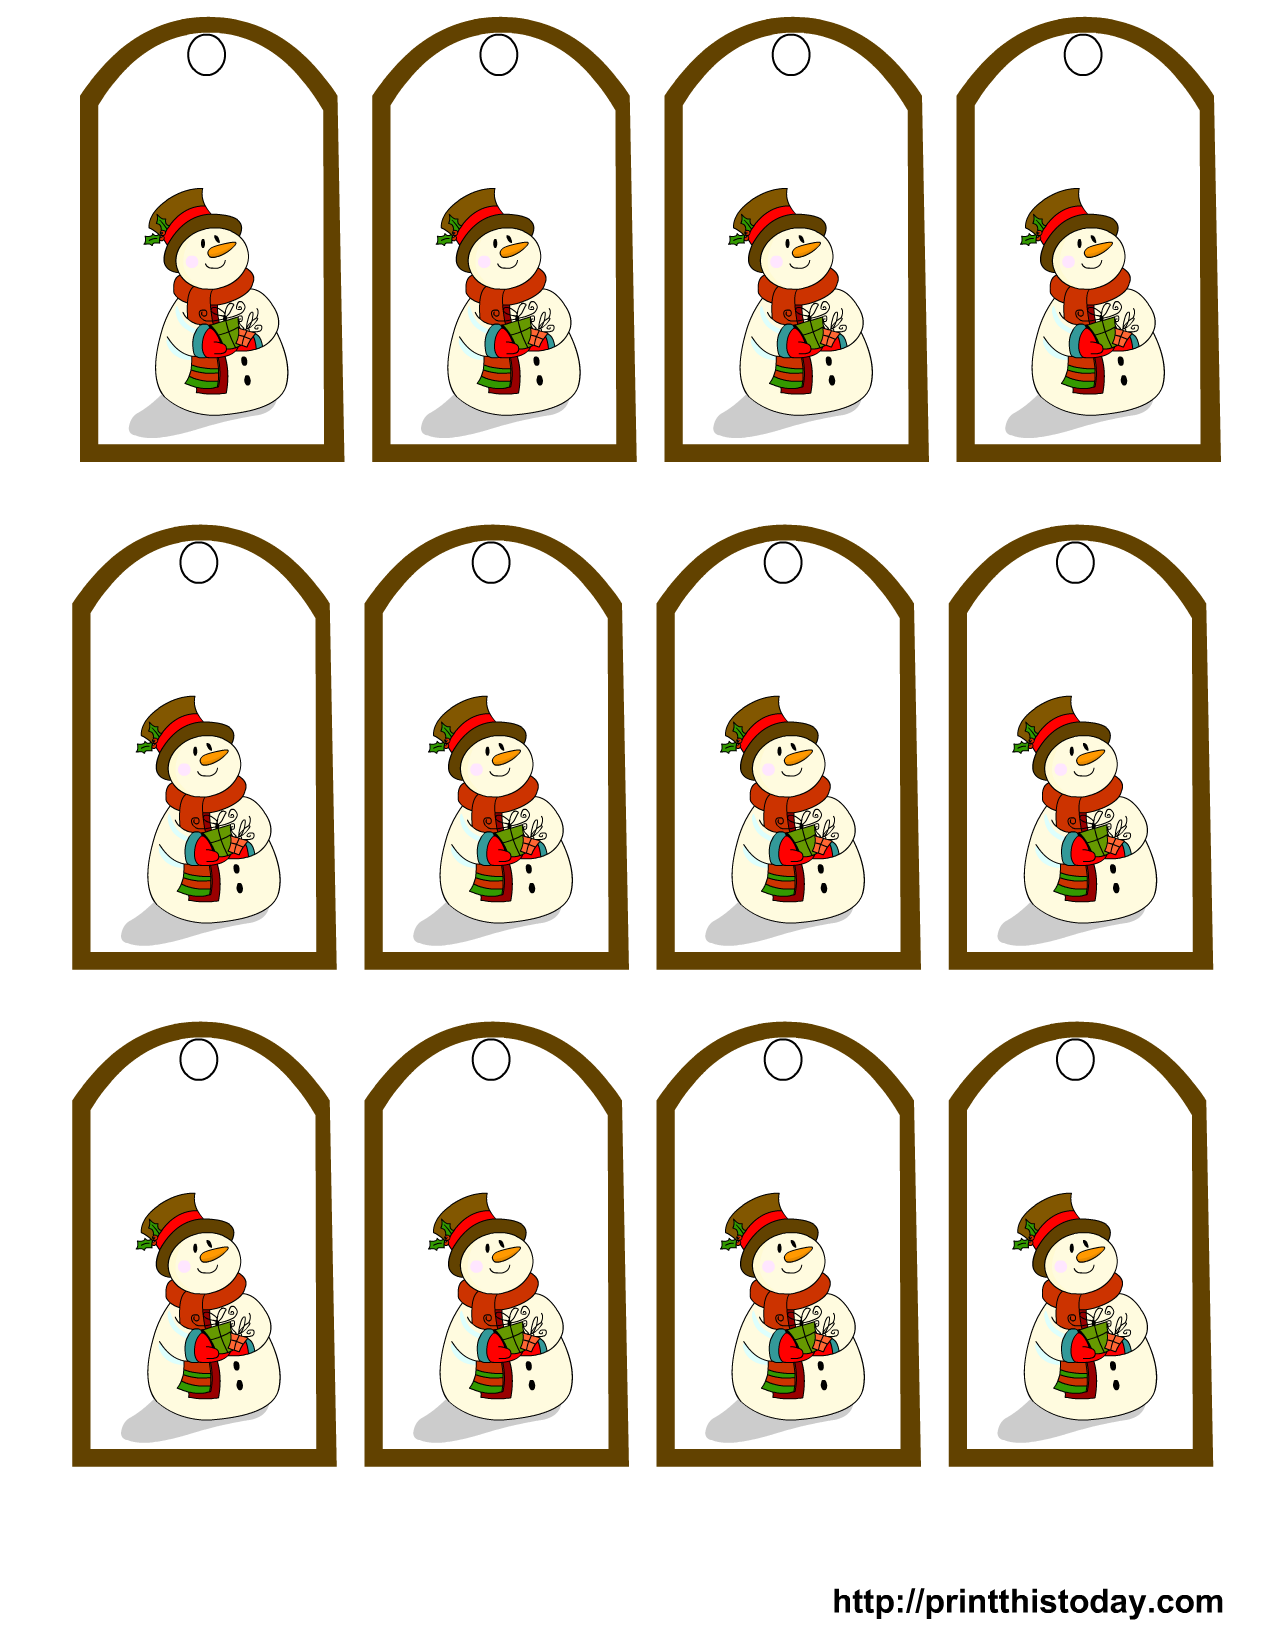 6 Images of Snowman Gift Tags Printable